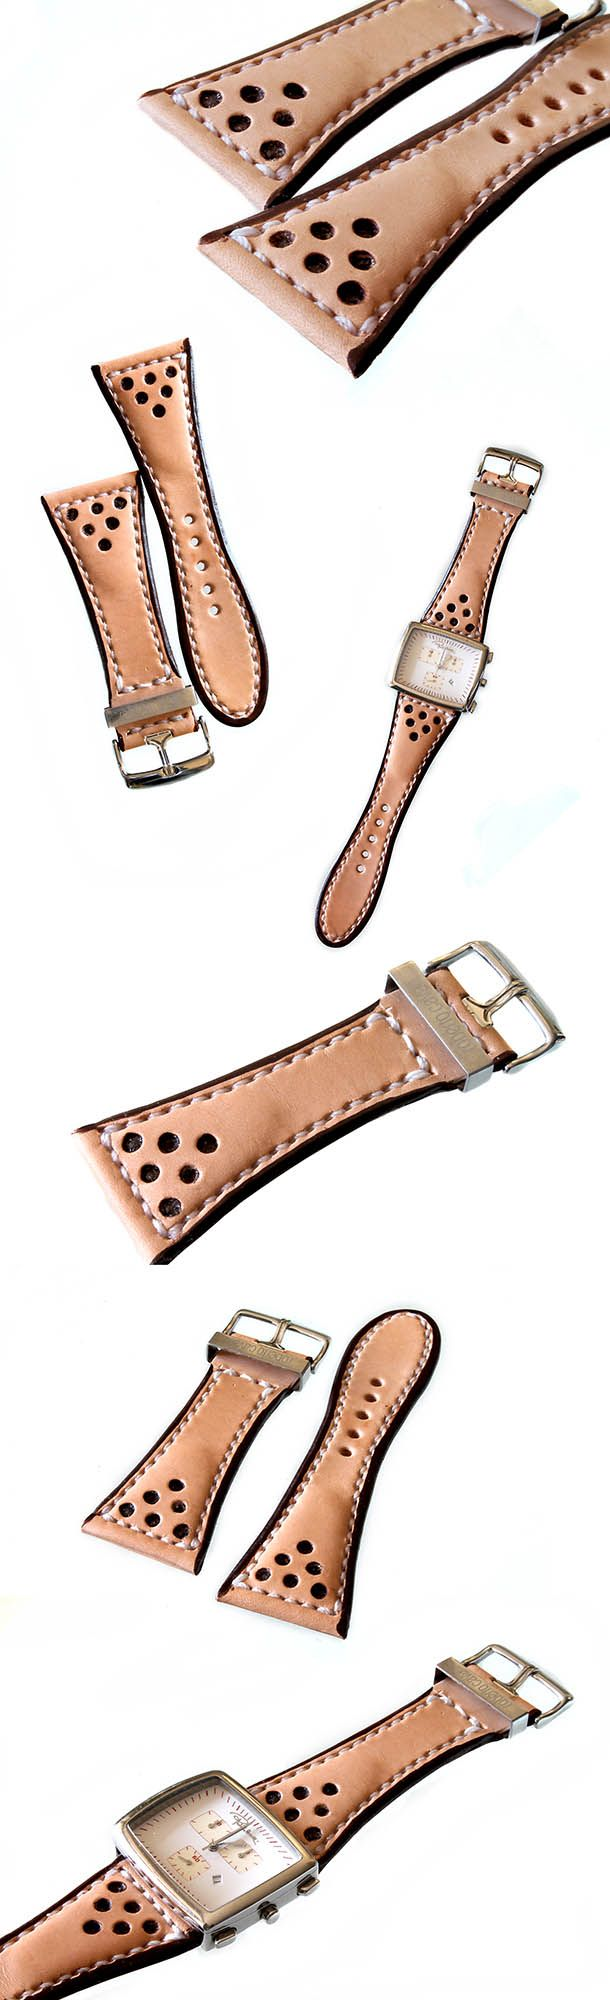 Hand made leather watch strap.